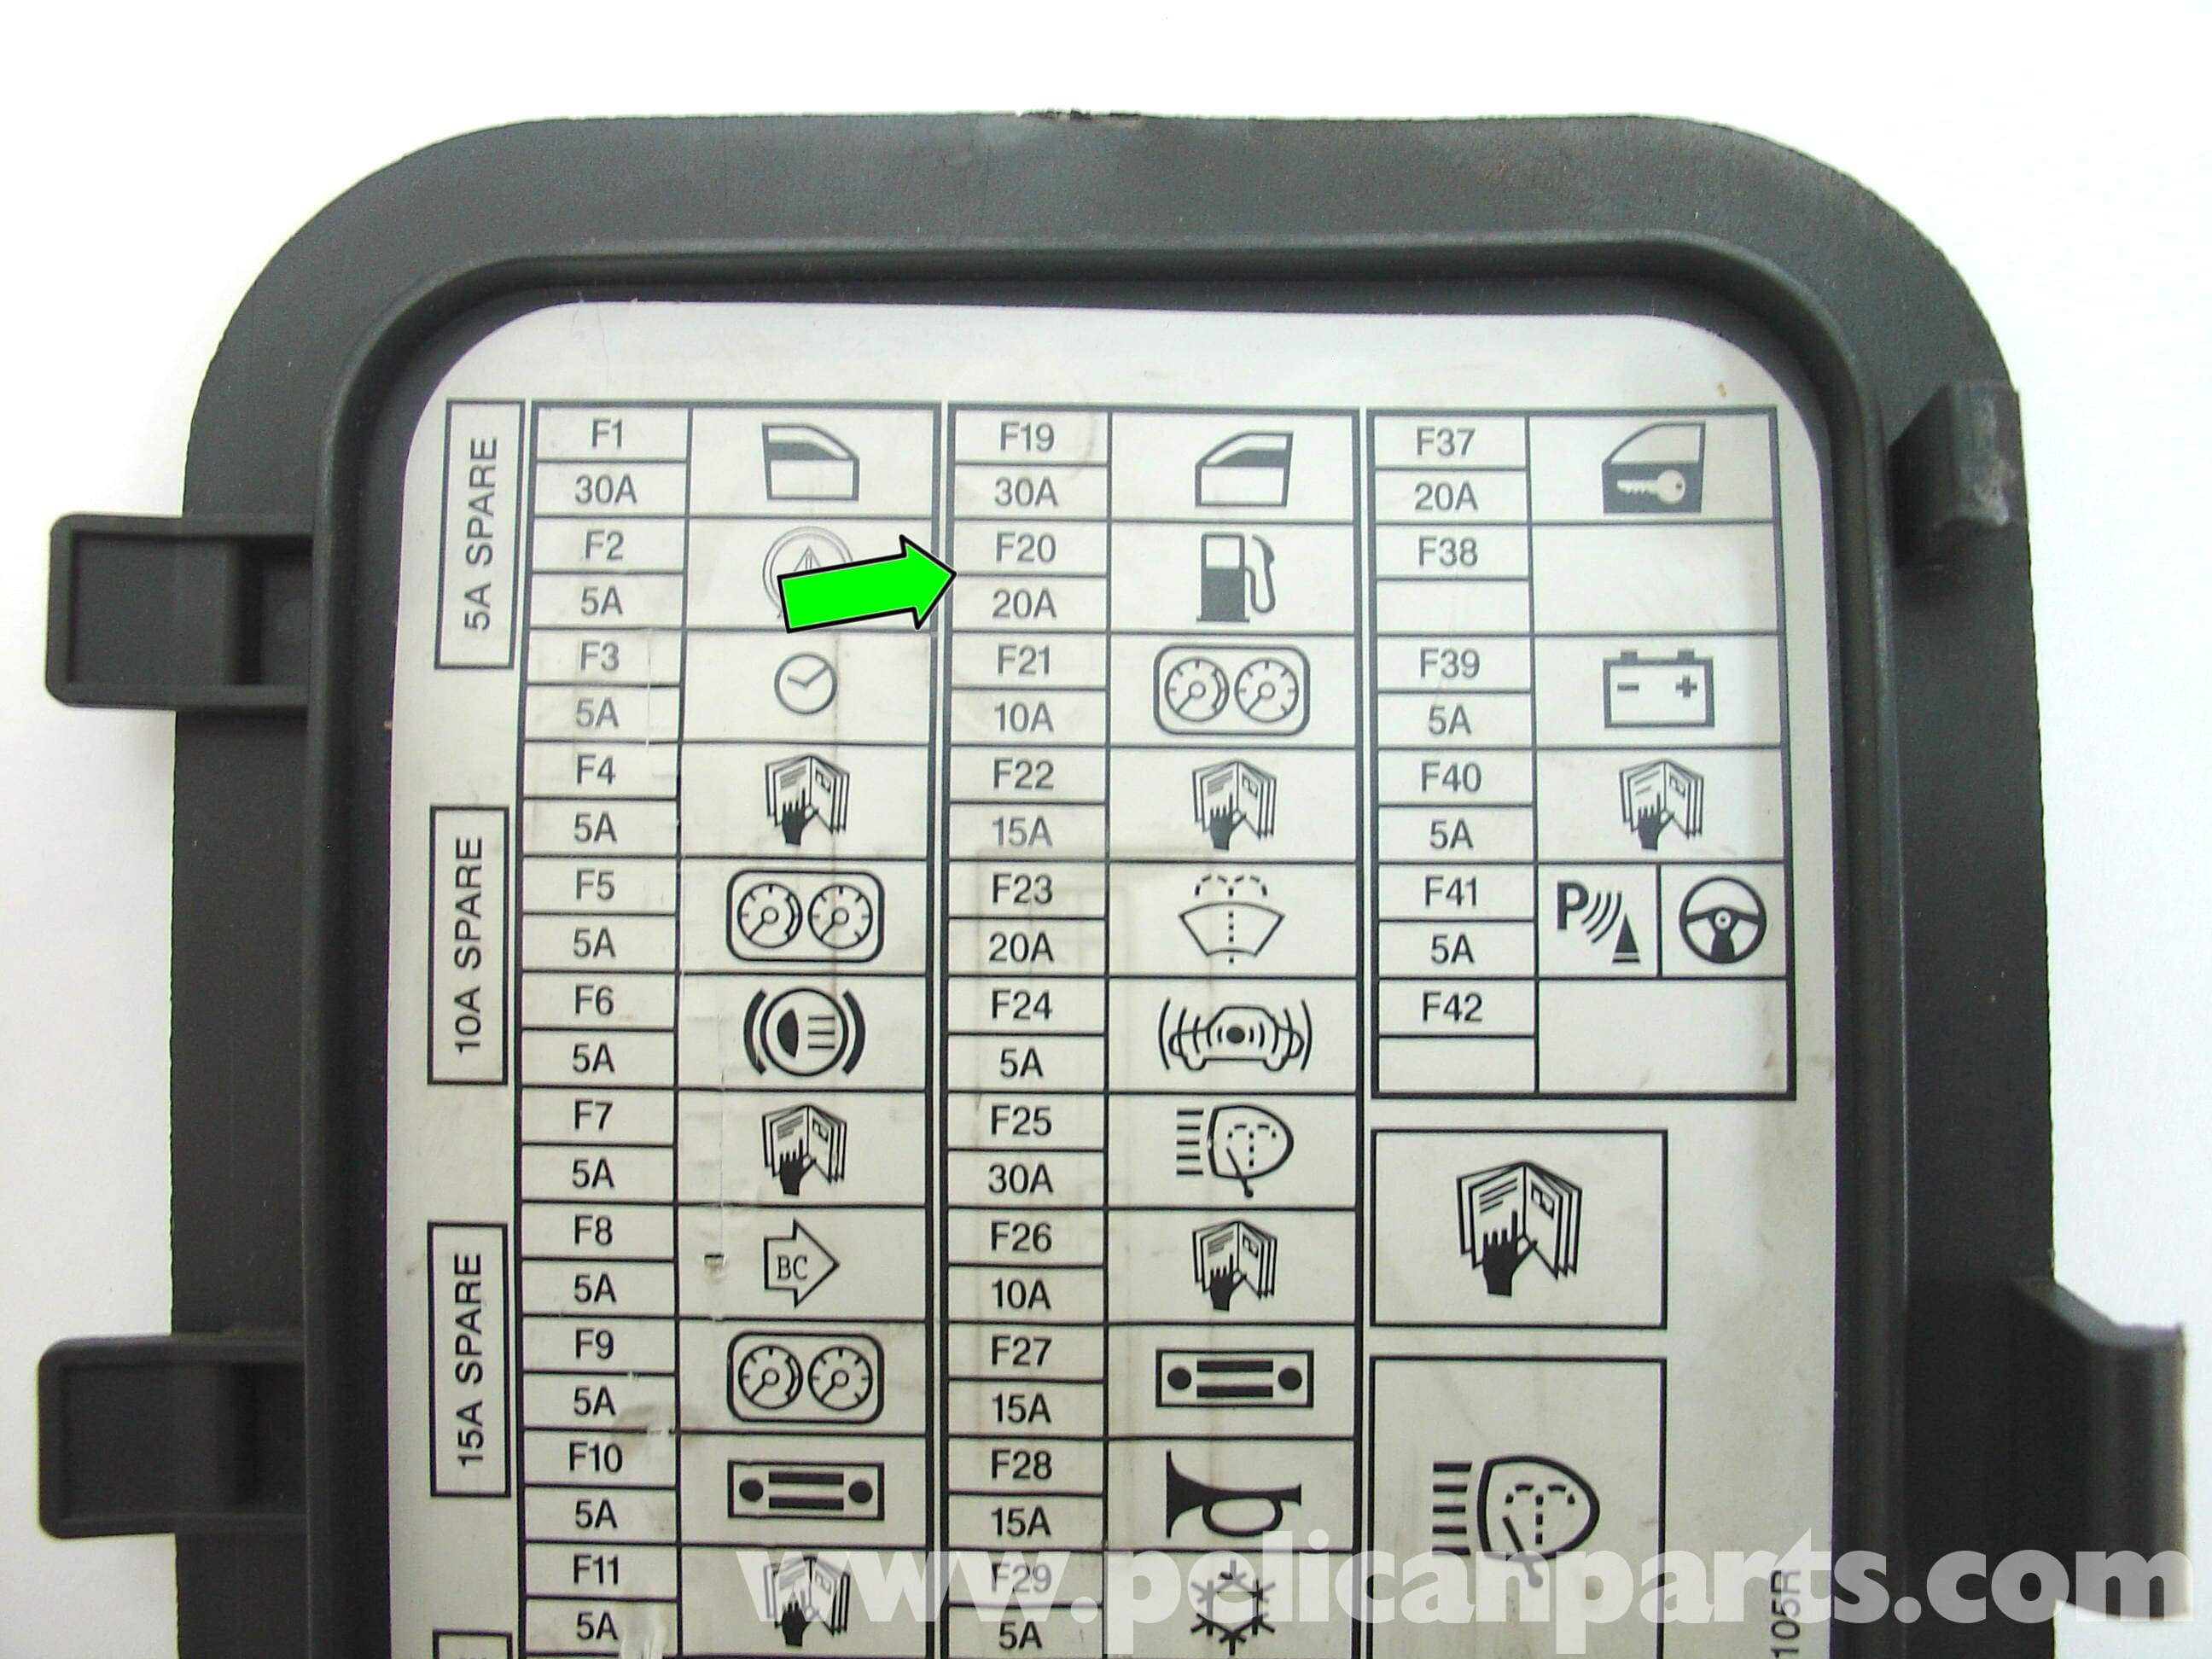 2011 Chevy Hhr Fuse Diagram Wiring Library Mitsubishi 3000gt Box Location 2007 Mini Cooper Simple Outlander Sport